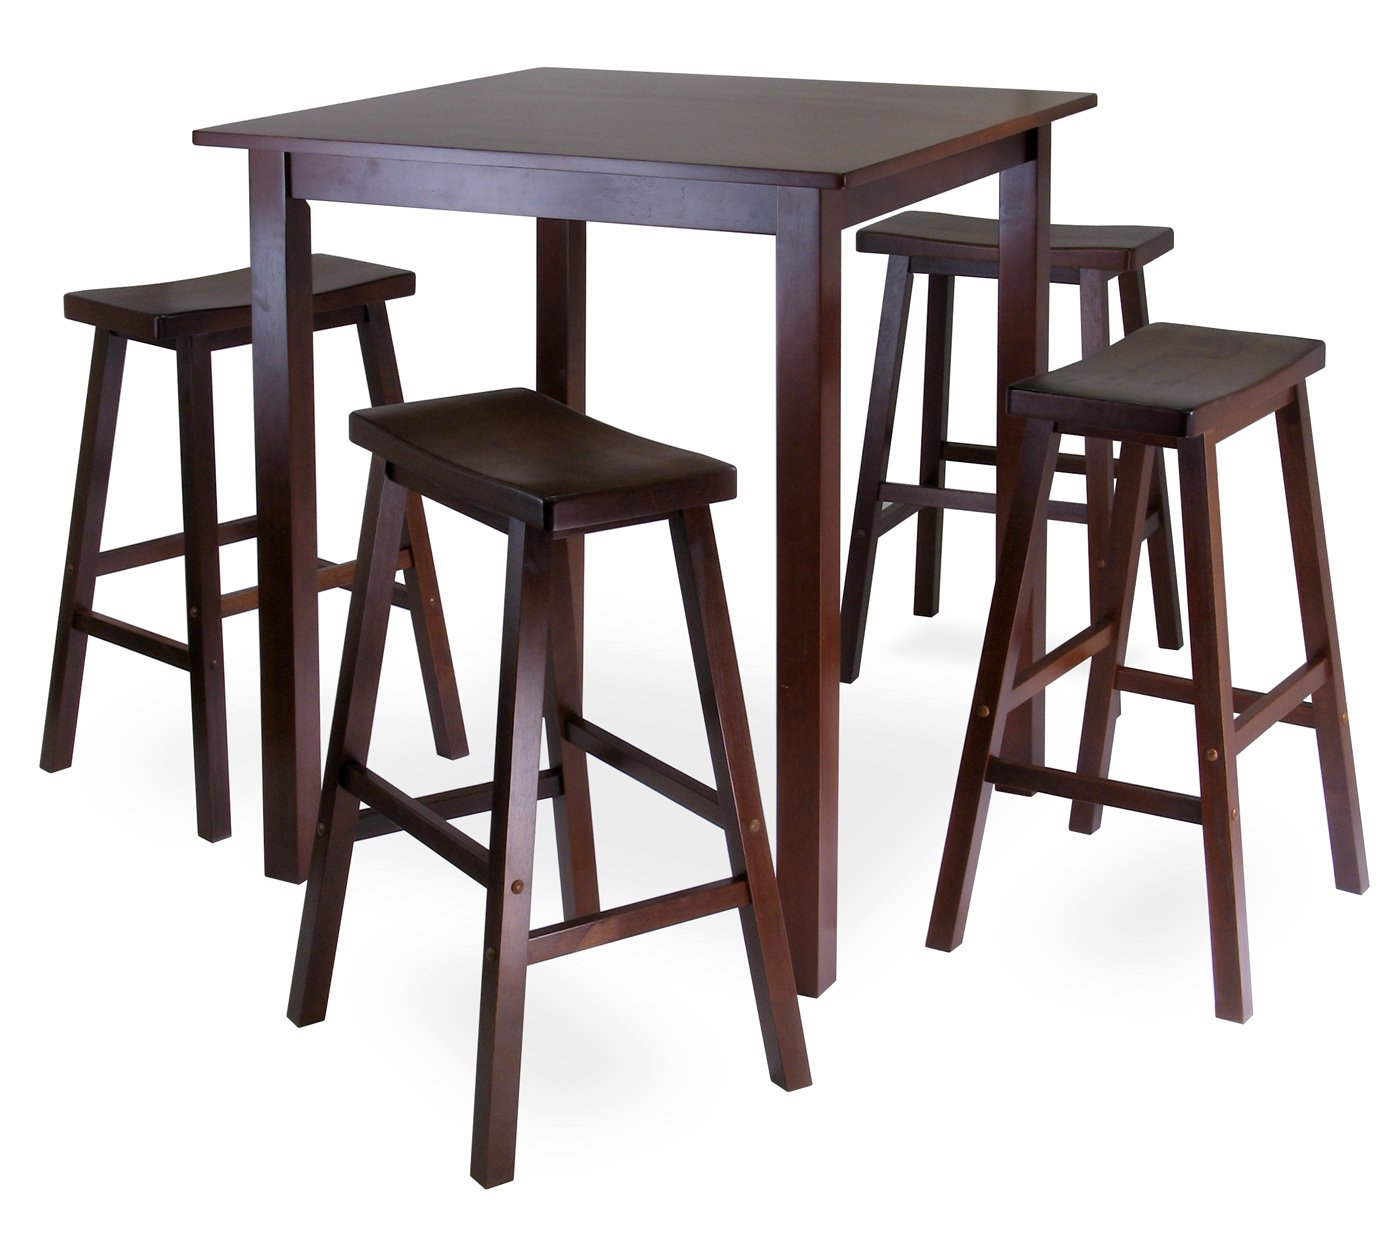 Amazon.com Winsomeu0027s Parkland 5-Piece Square High/Pub Table Set in Antique Walnut Finish Kitchen u0026 Dining  sc 1 st  Amazon.com & Amazon.com: Winsomeu0027s Parkland 5-Piece Square High/Pub Table Set in ...